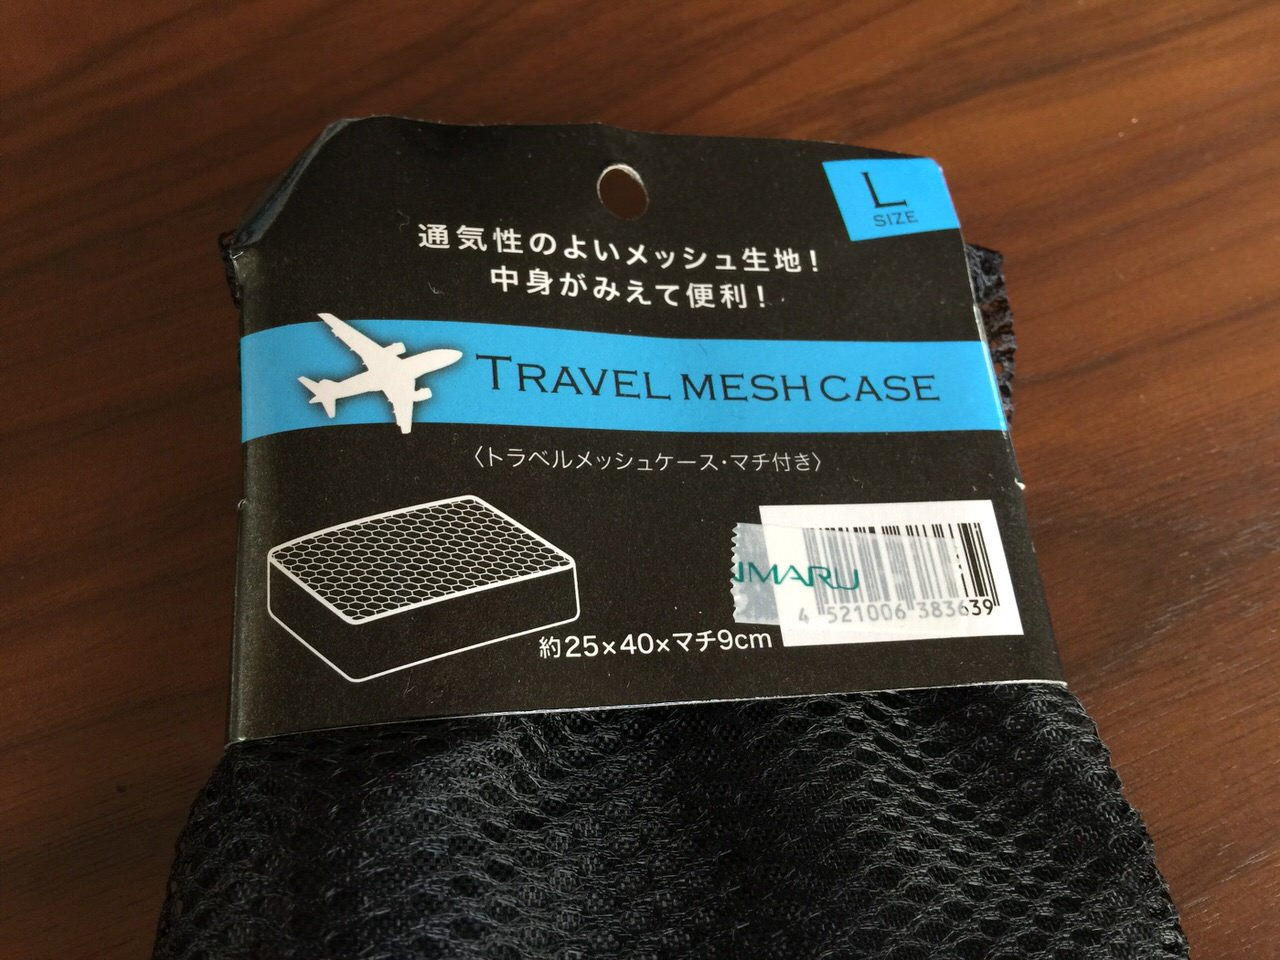 Travel mesh case 7290